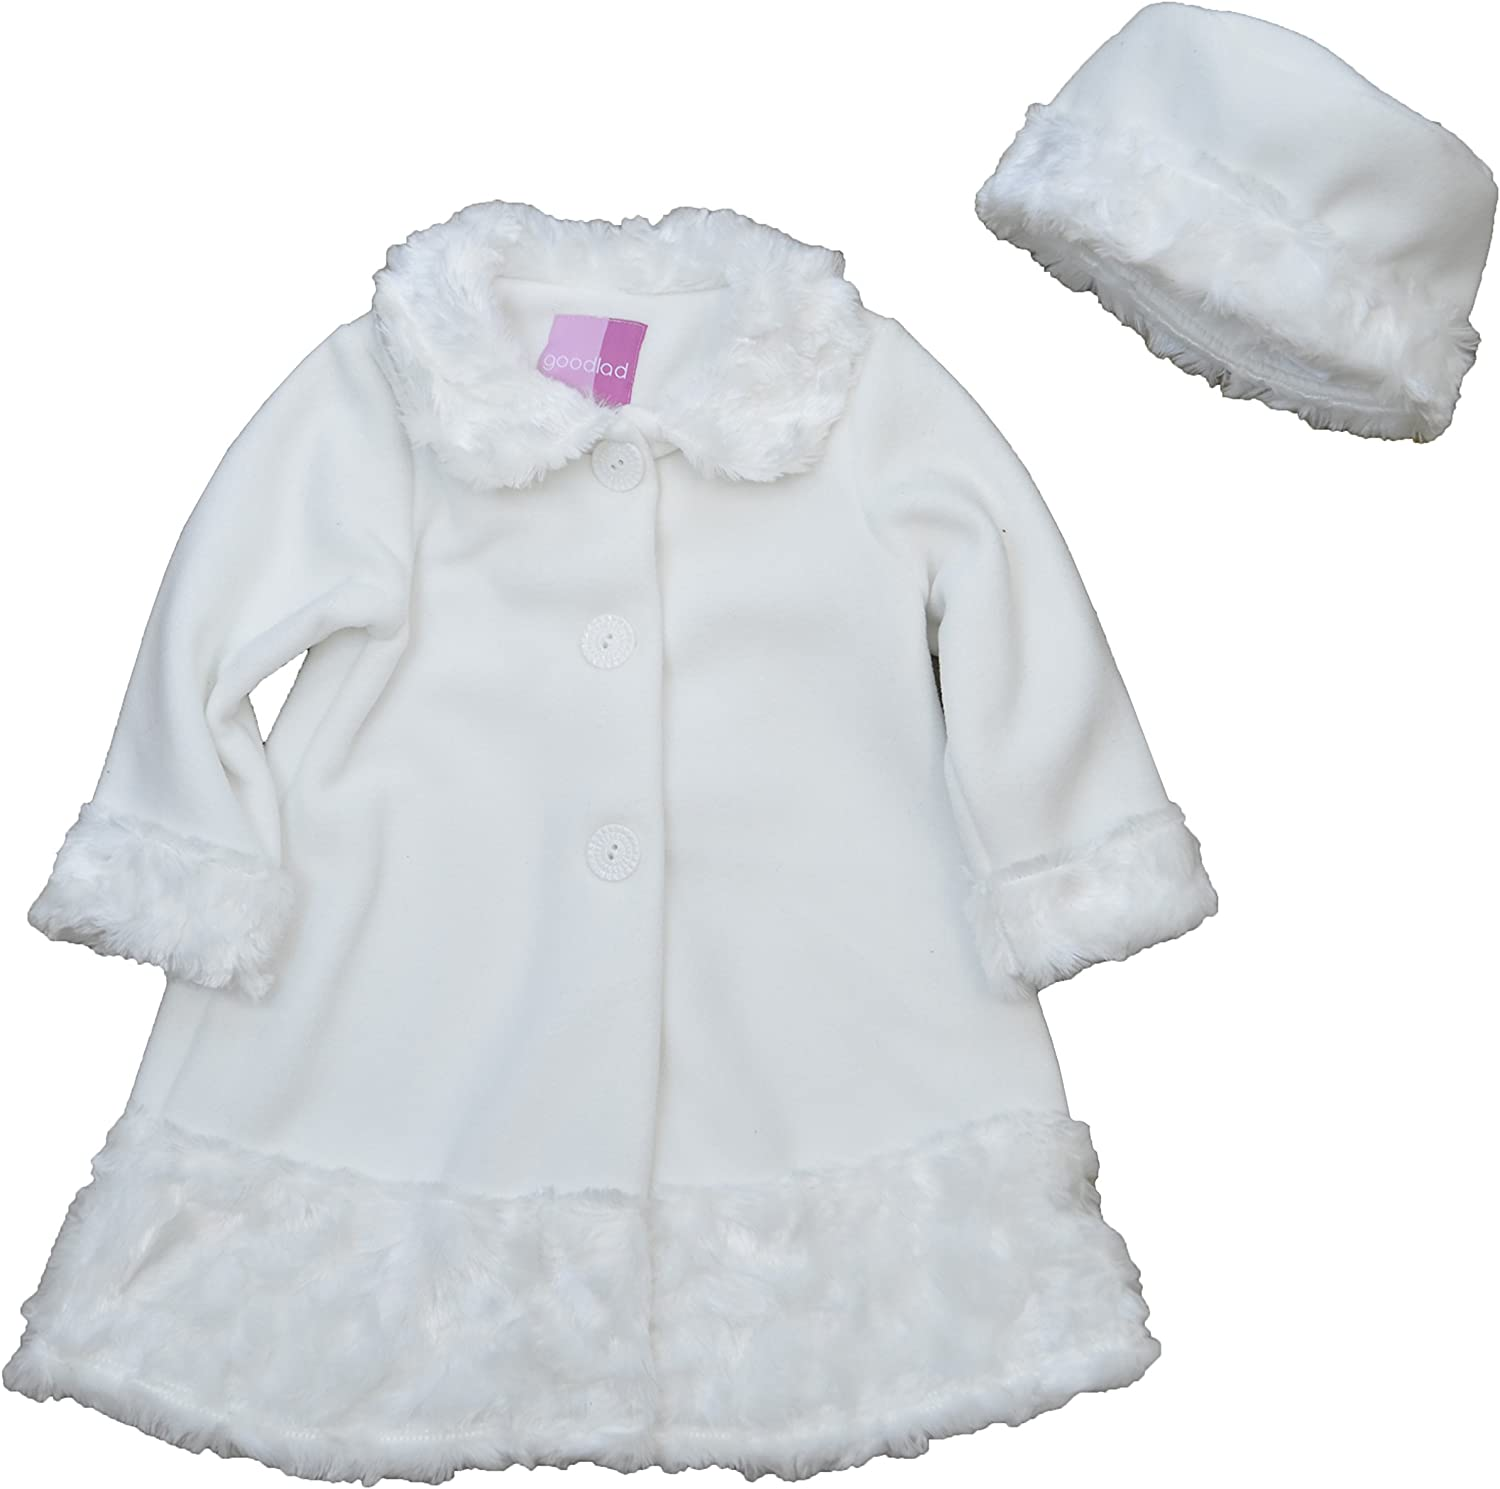 Good Lad Newborn//Infant Girls Creme Fleece Coat with Floral Embroidery and Matching Hat